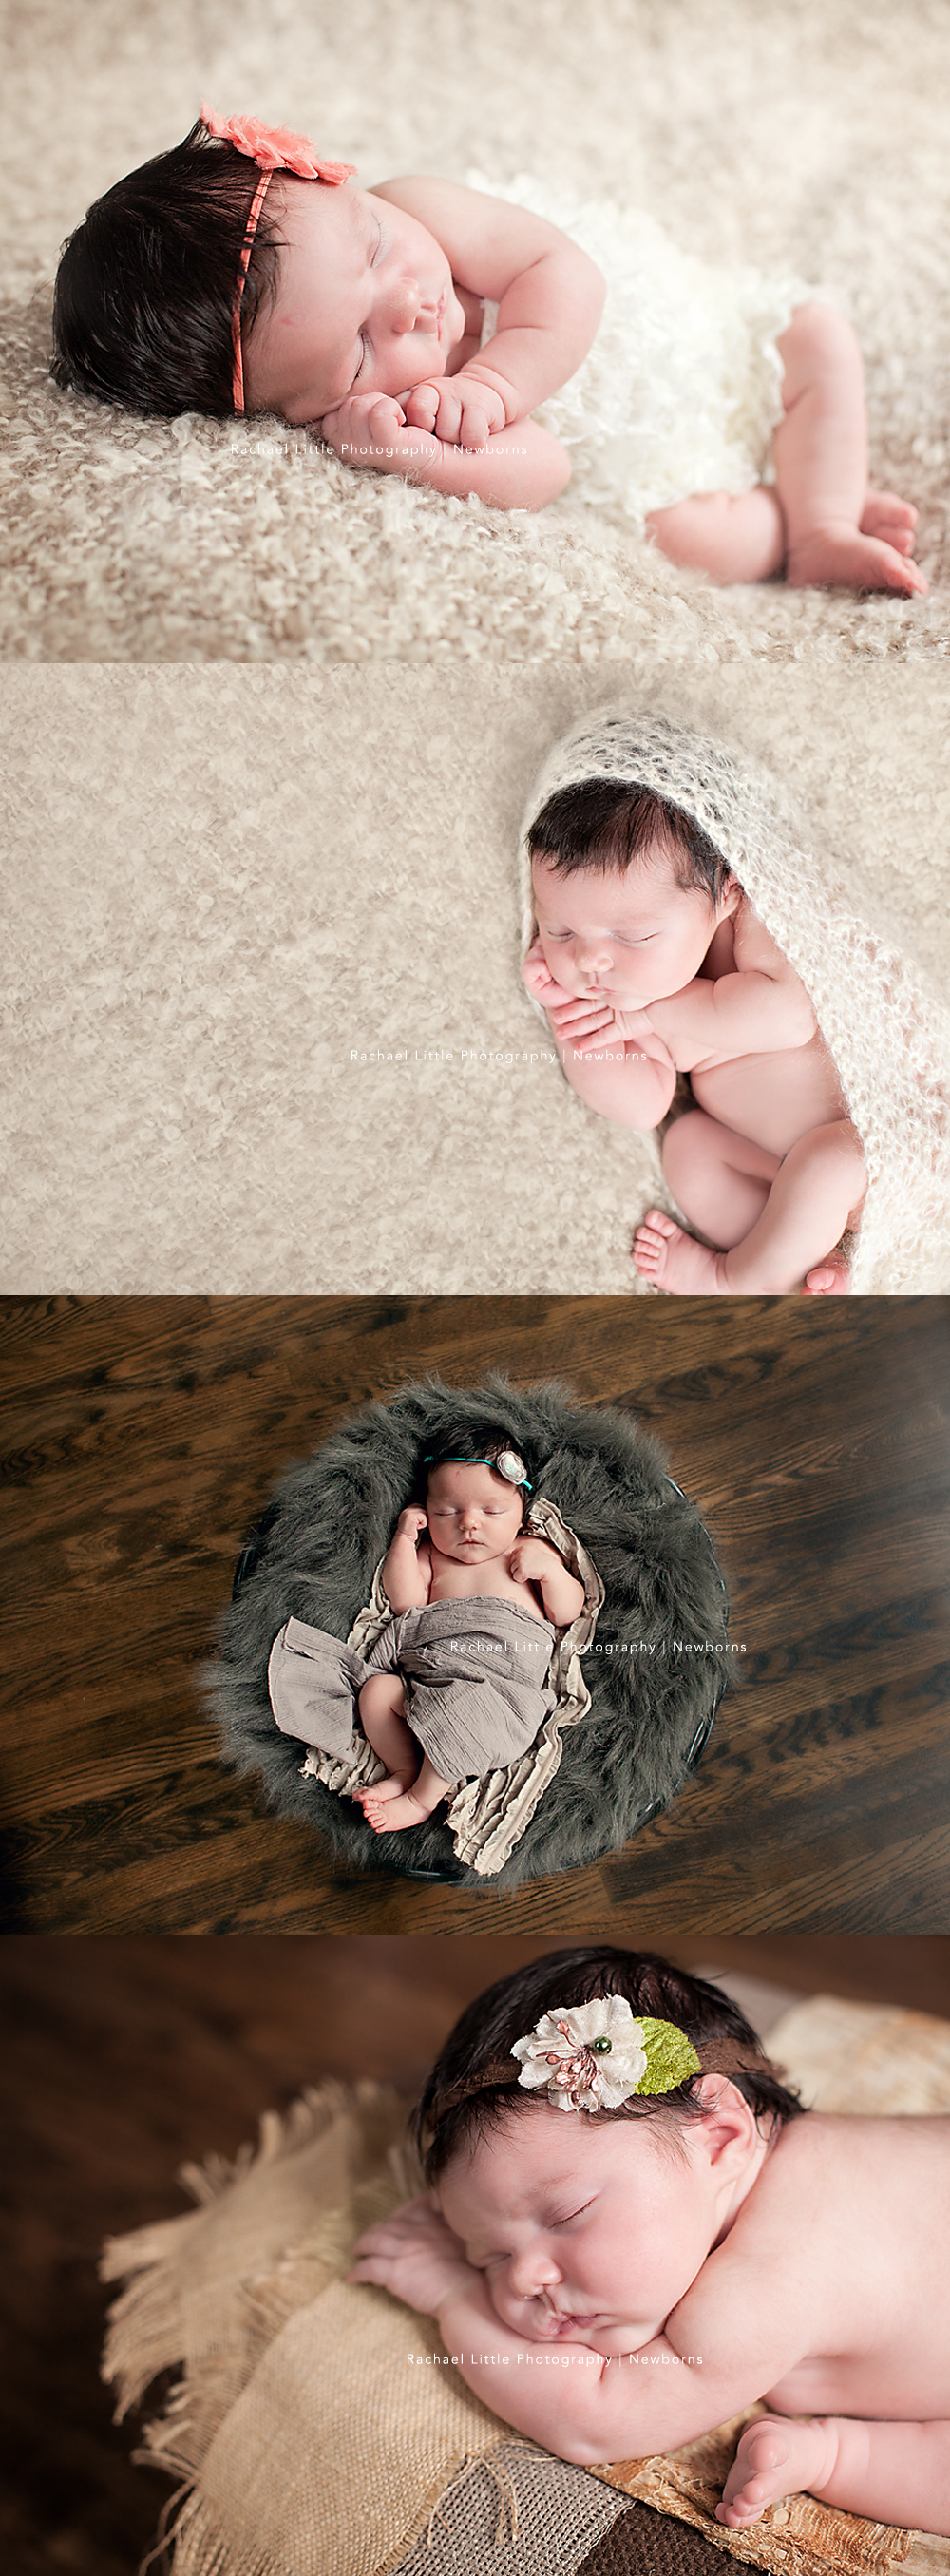 Woodstock Newborn Photography